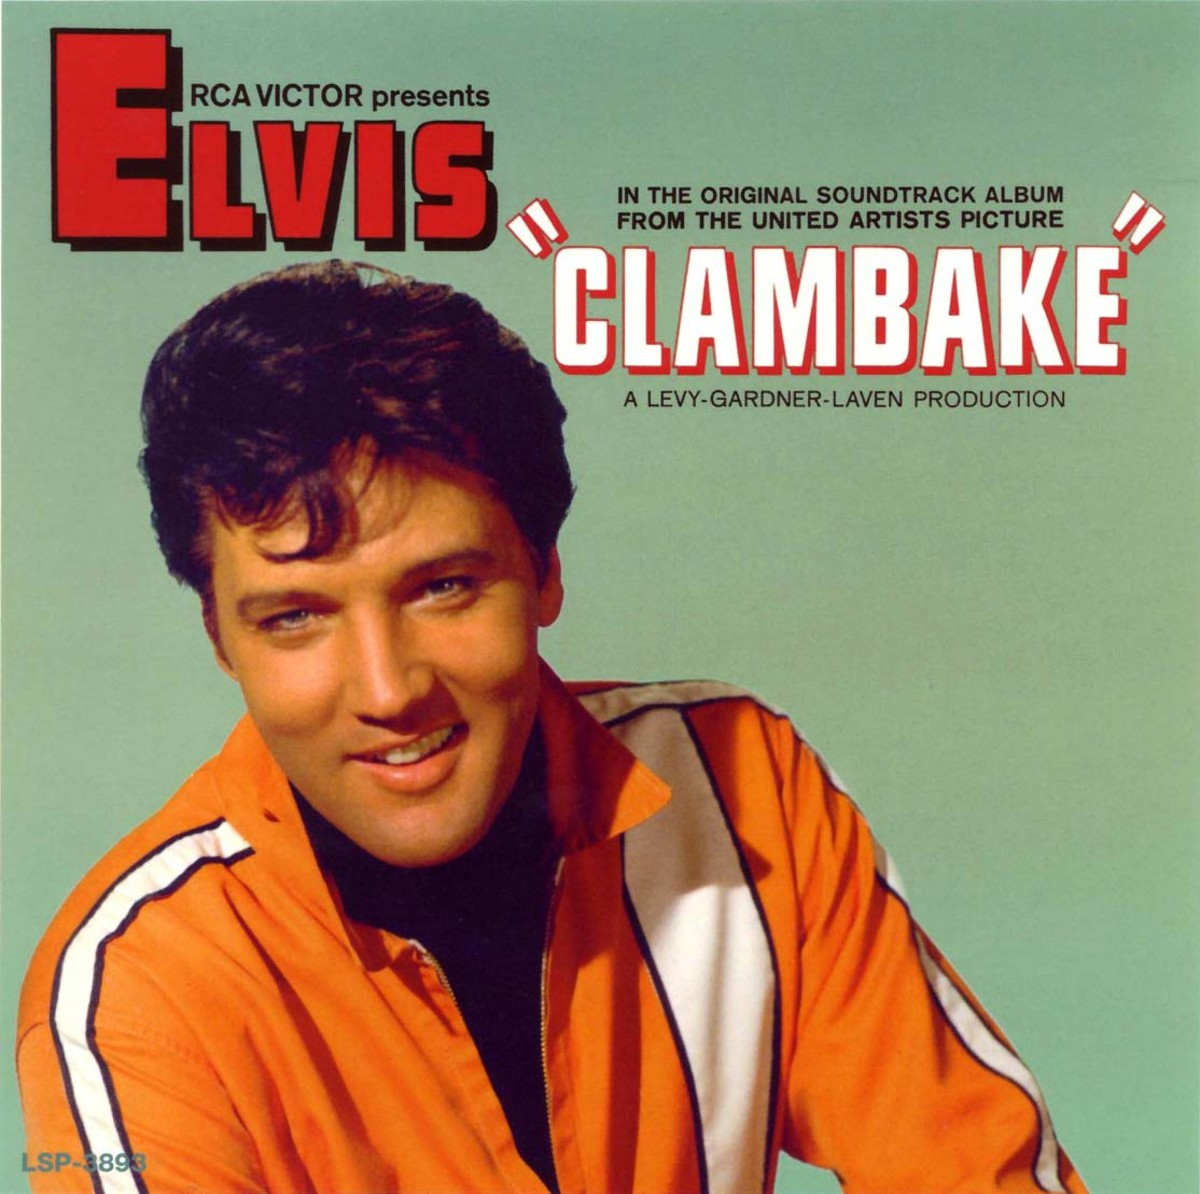 """Depending on condition, the 1967 original soundtrack album from the Elvis Presley movie """"Clambake"""" could be worth as much as $350."""